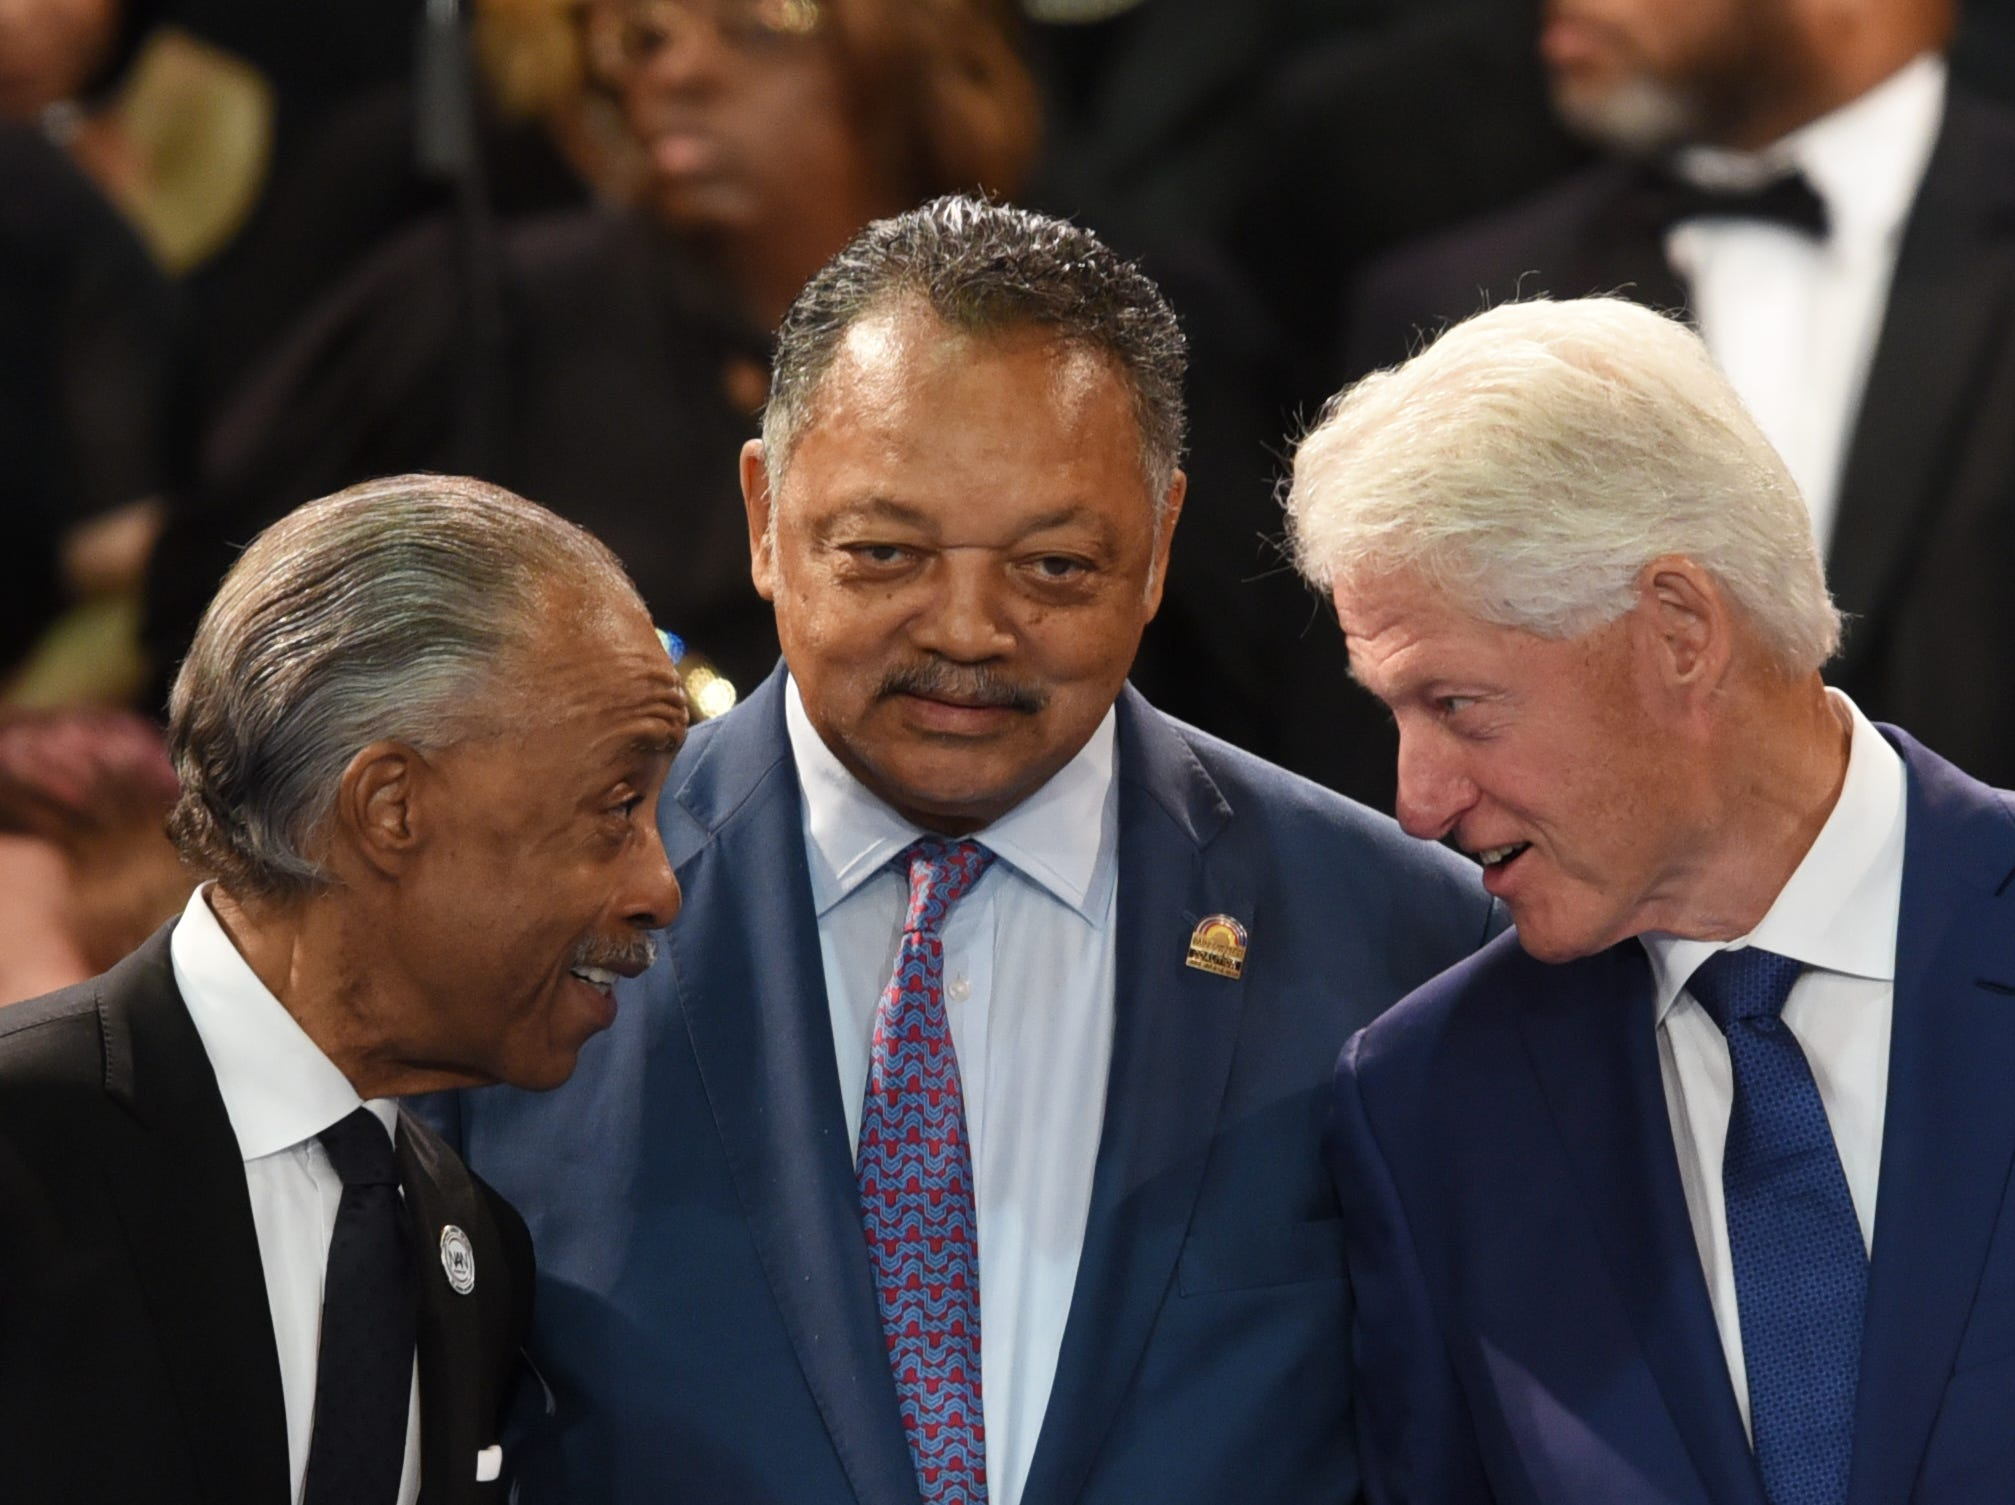 Rev. Al Sharpton (from left), Rev. Jesse Jackson, and President Bill Clinton speak to one another at the Aretha Franklin's funeral service at Greater Grace Temple on Friday, August 31, 2018.